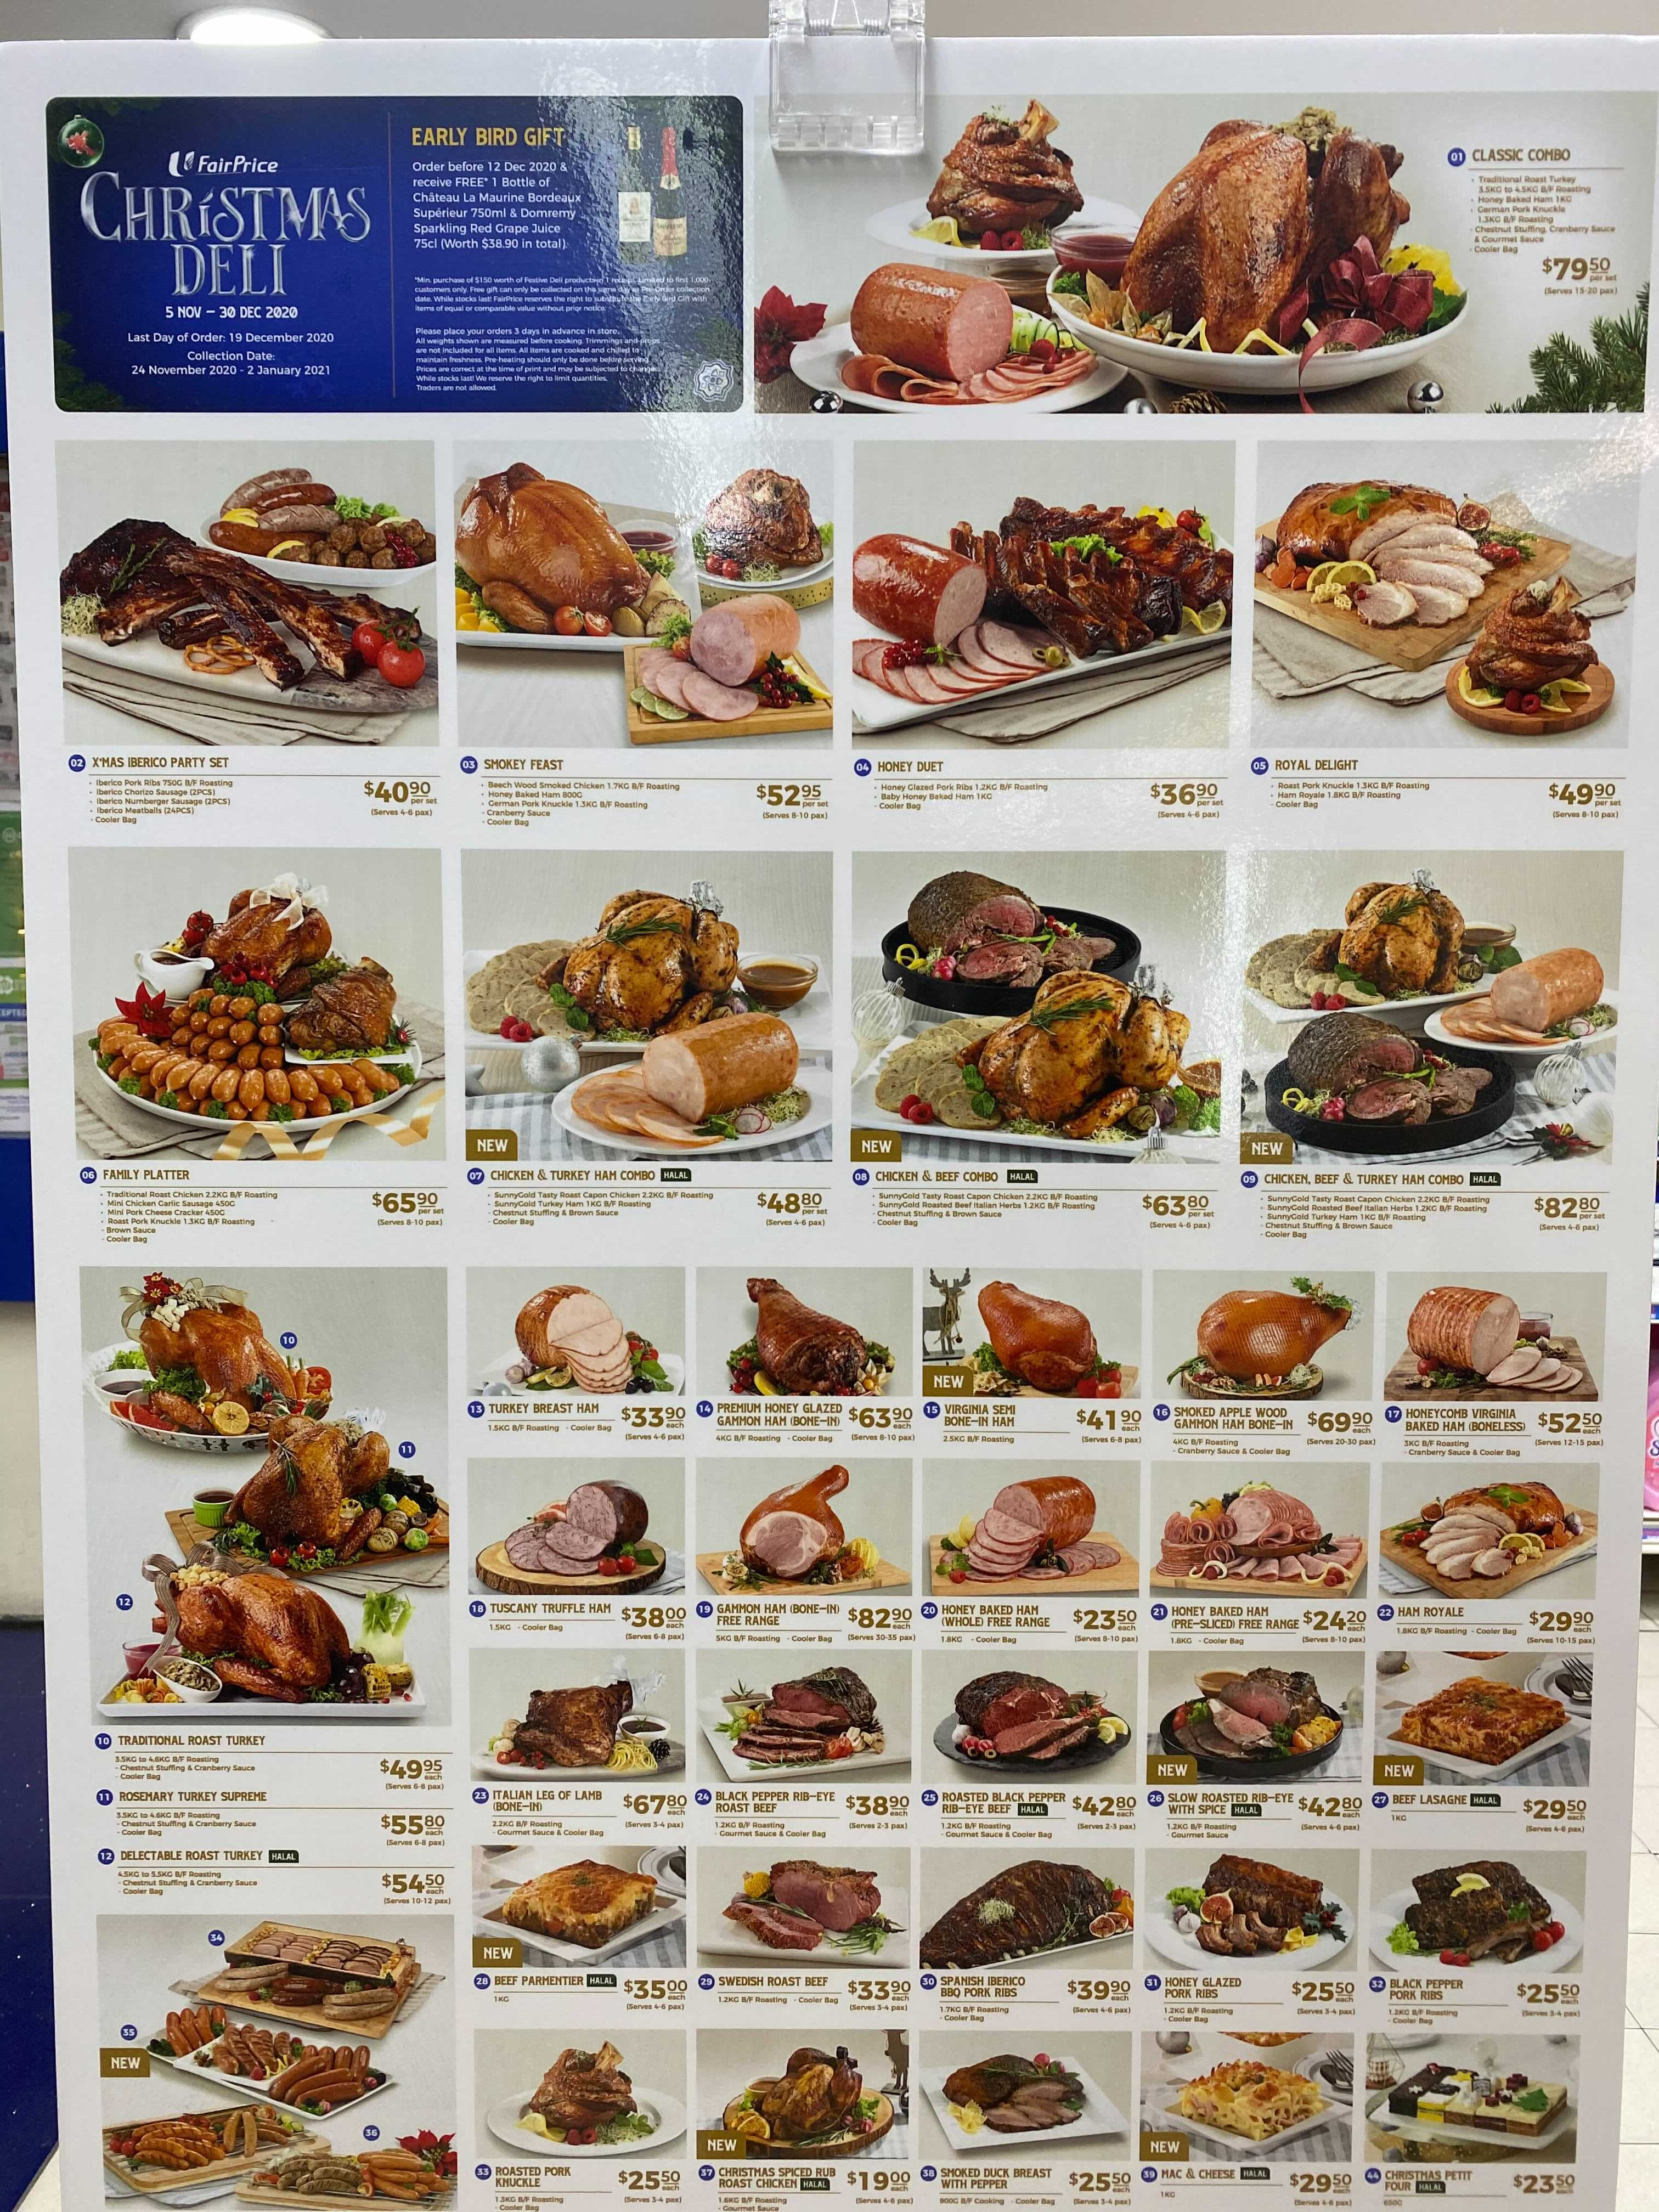 Fairprice Christmas Catalogue 2021 8 Christmas Turkeys From Supermarkets Butchers That Are Under 120